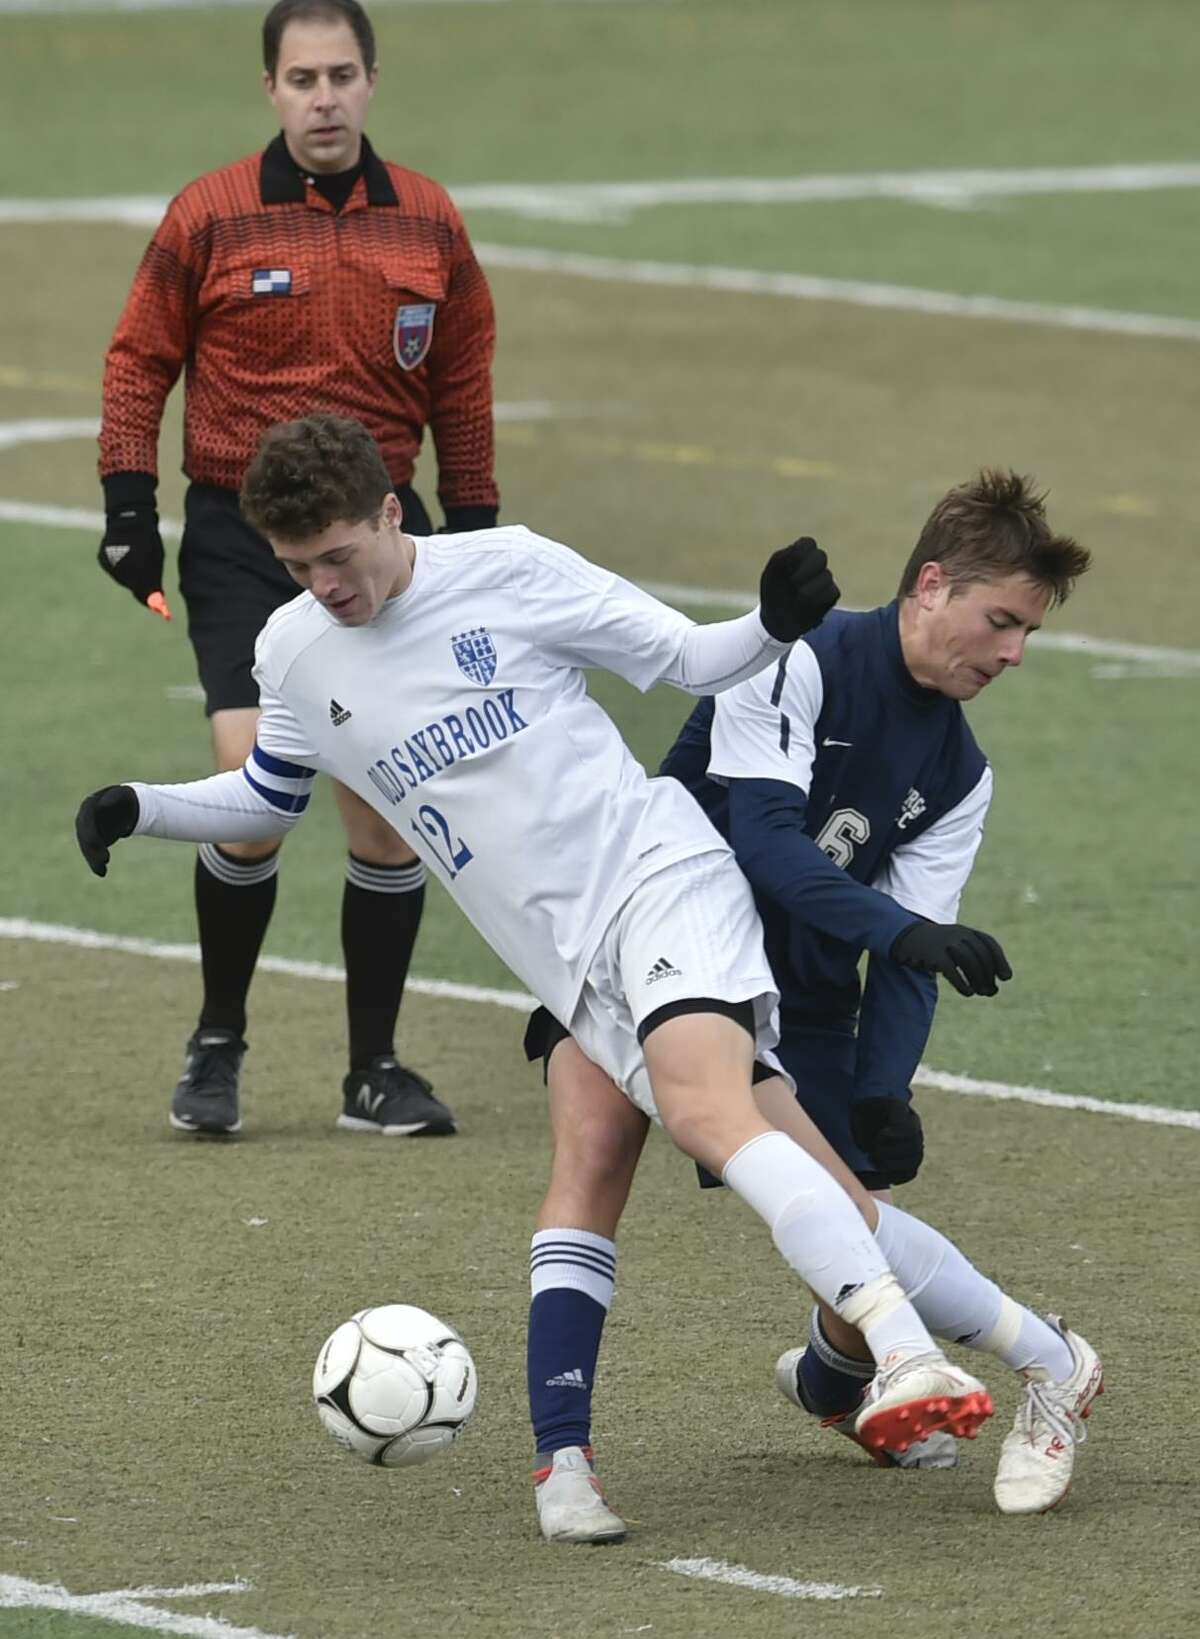 Middletown, Connecticut, November 18, 2018: Old Saybrook High School vs. Morgan H.S. during the second-half of the CIAC 2018 State Boys Class S Soccer Tournament Finals Sunday at Middletown High School. Old Saybrook H.S. defeats Morgan H.S. 2-1.